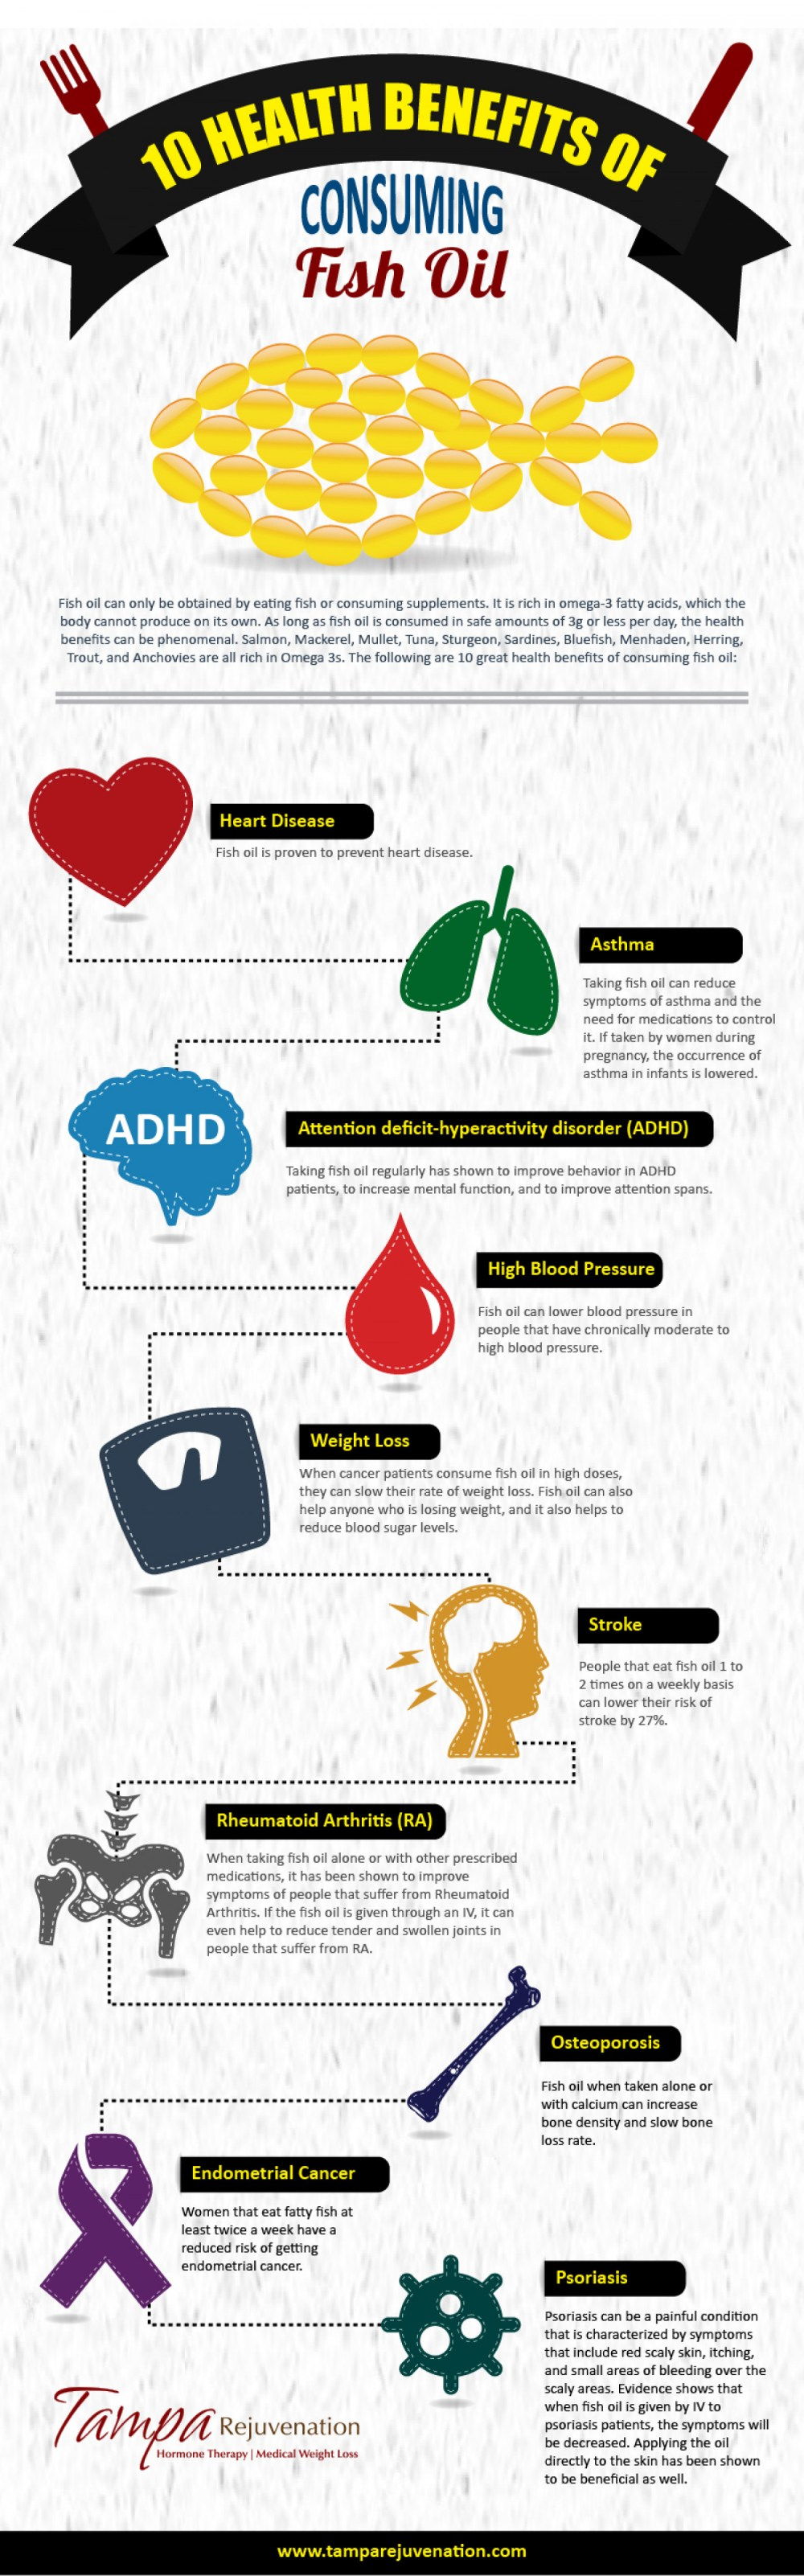 medium resolution of 10 health benefits of consuming fish oil infographic